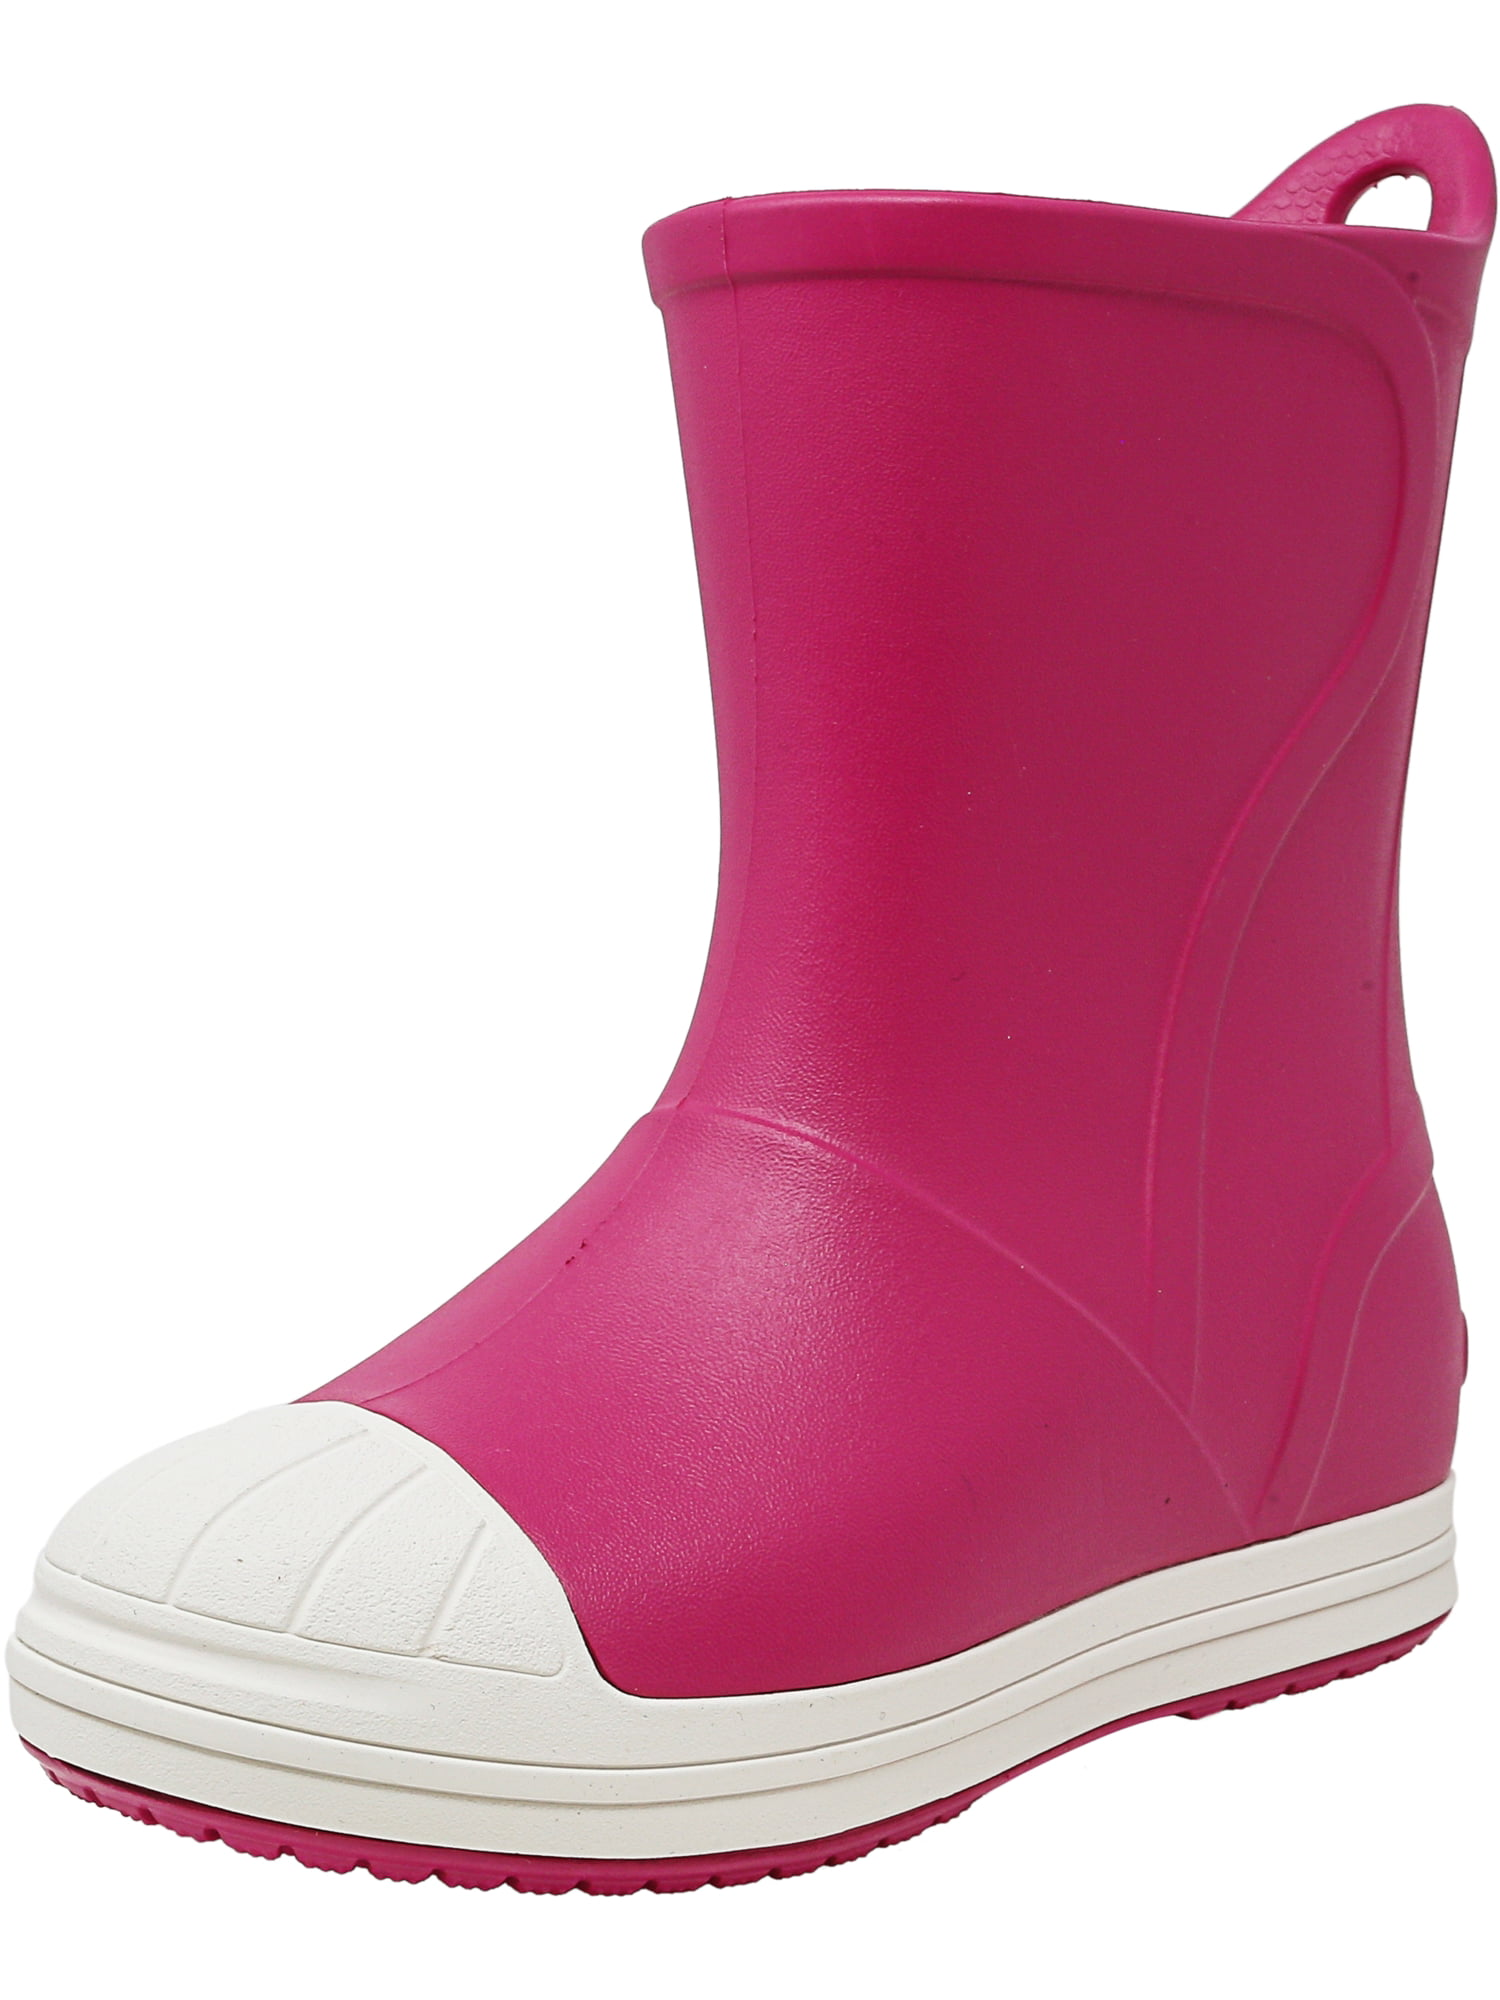 Crocs Bump It Boot Candy Pink   Oyster Mid-Calf Rain 13M by Crocs